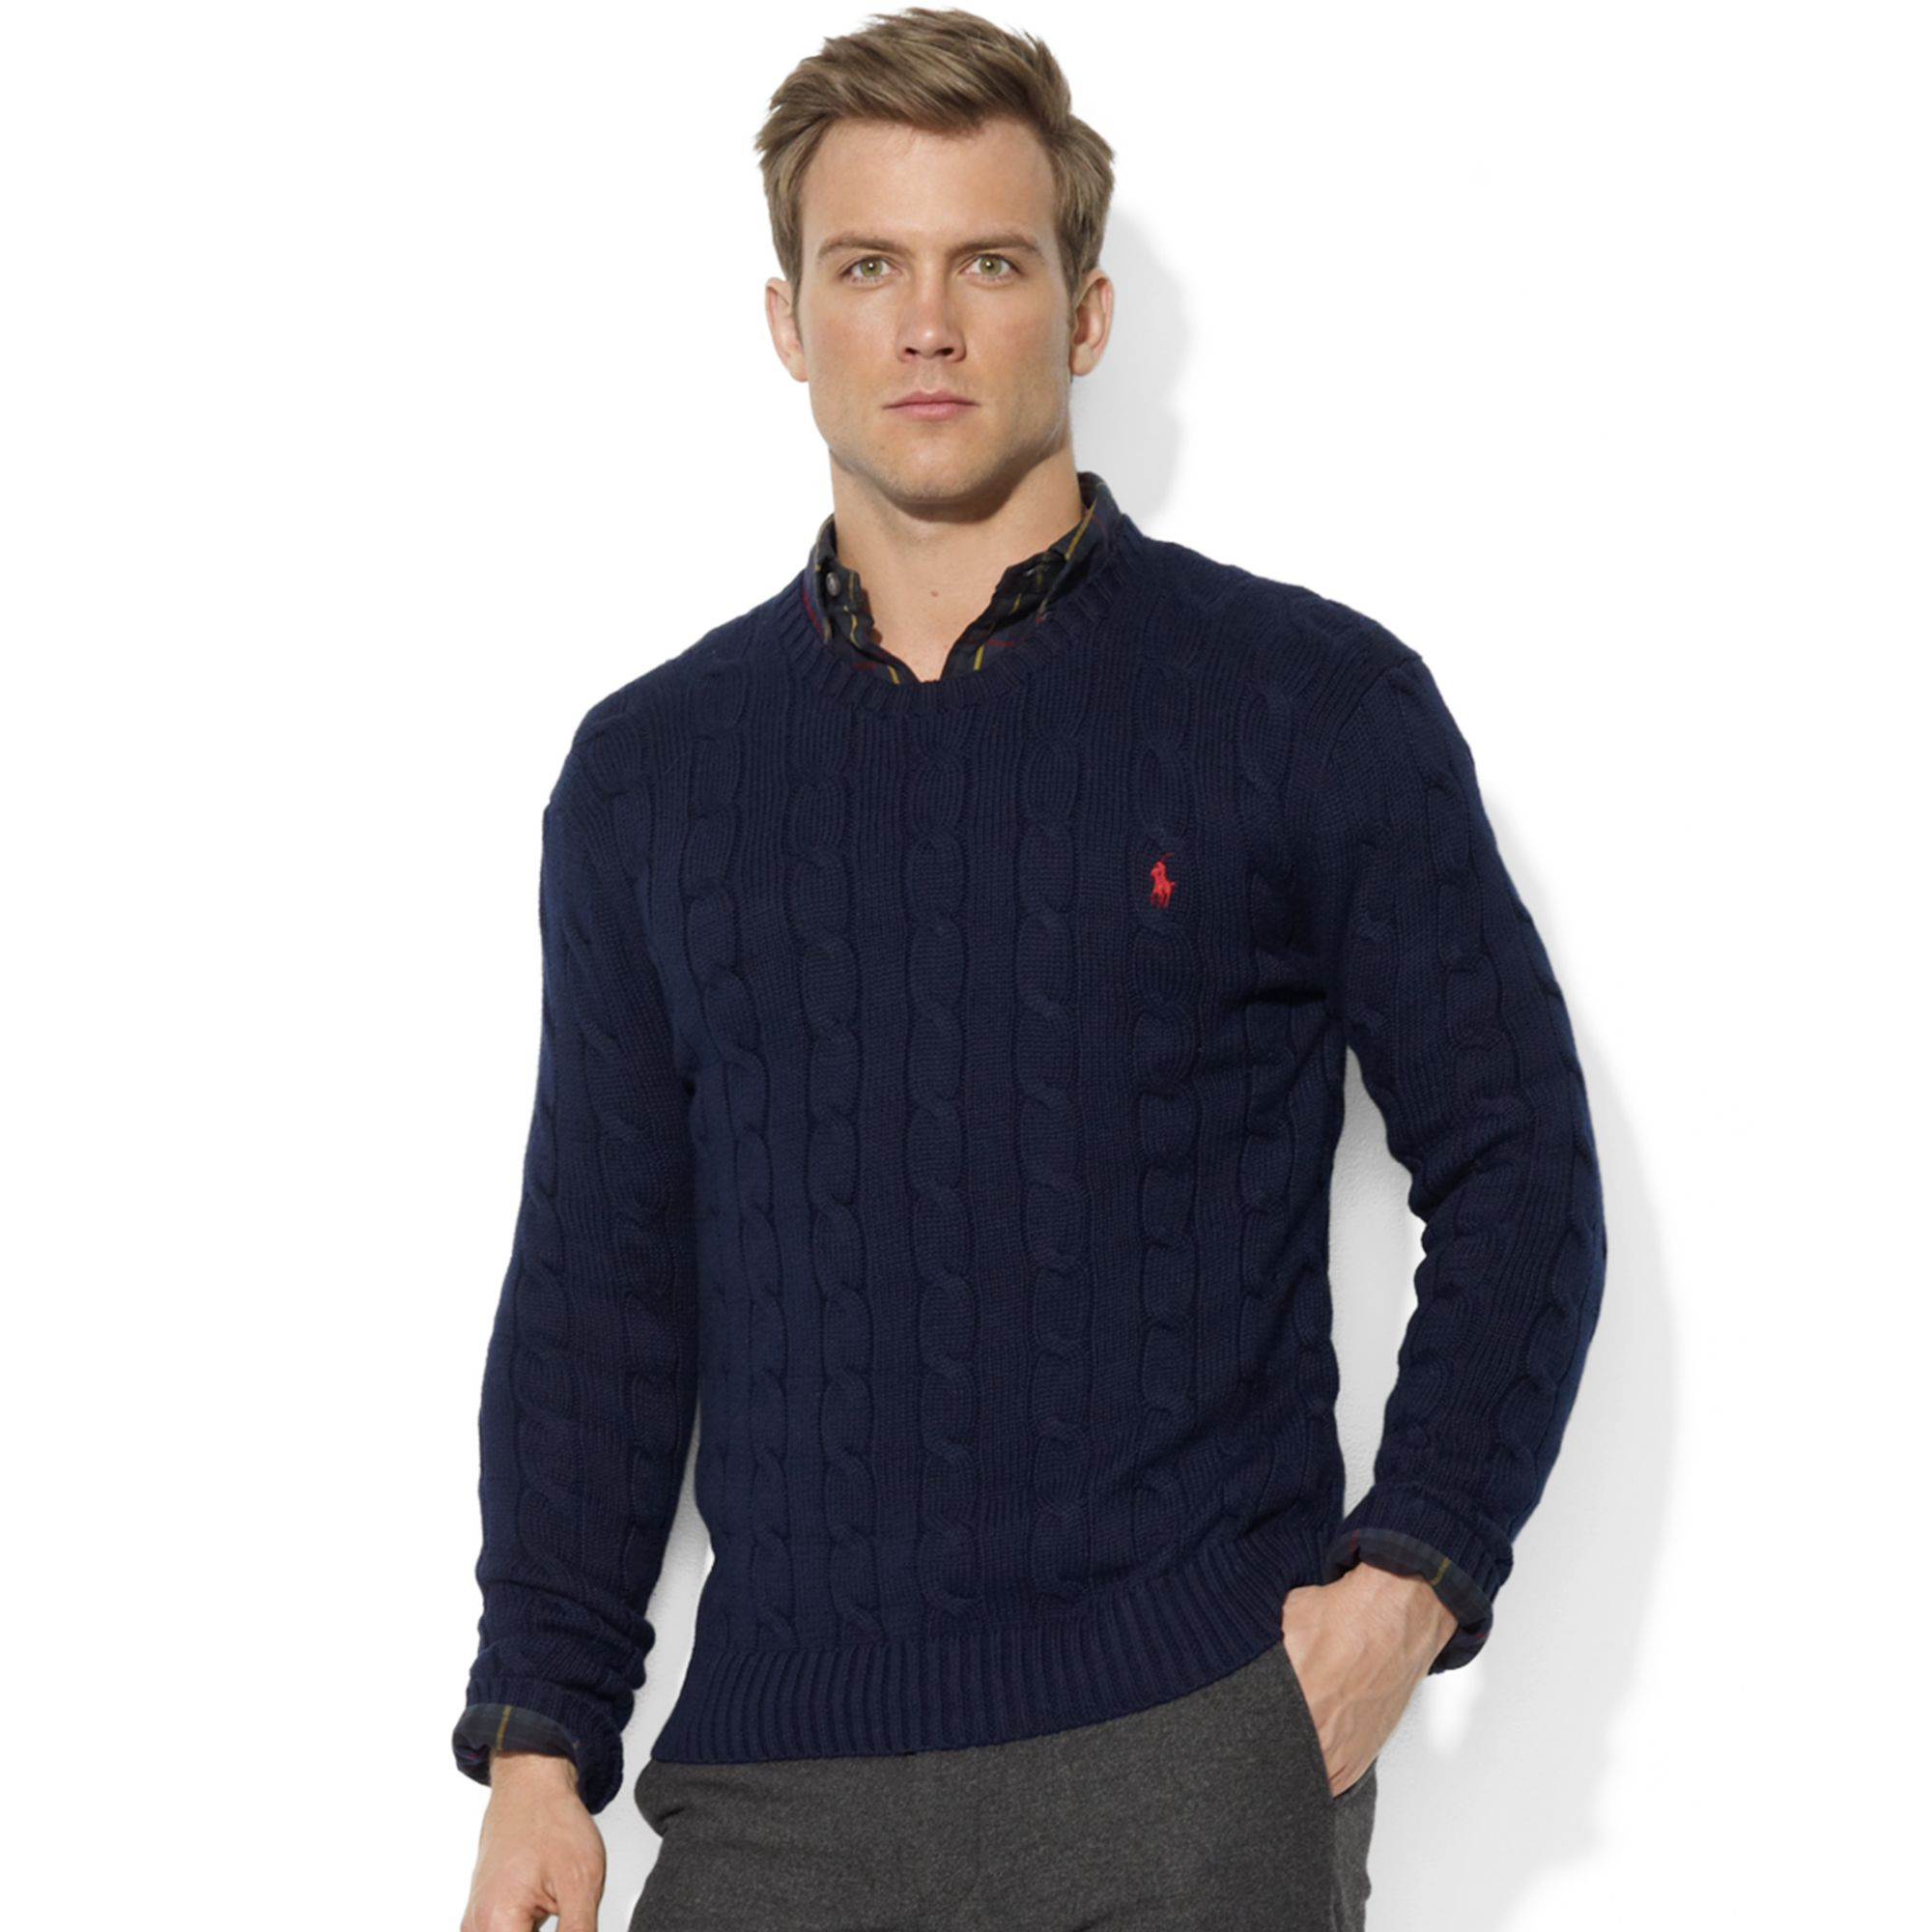 Ralph Lauren Roving Crew Neck Cable Cotton Sweater In Blue